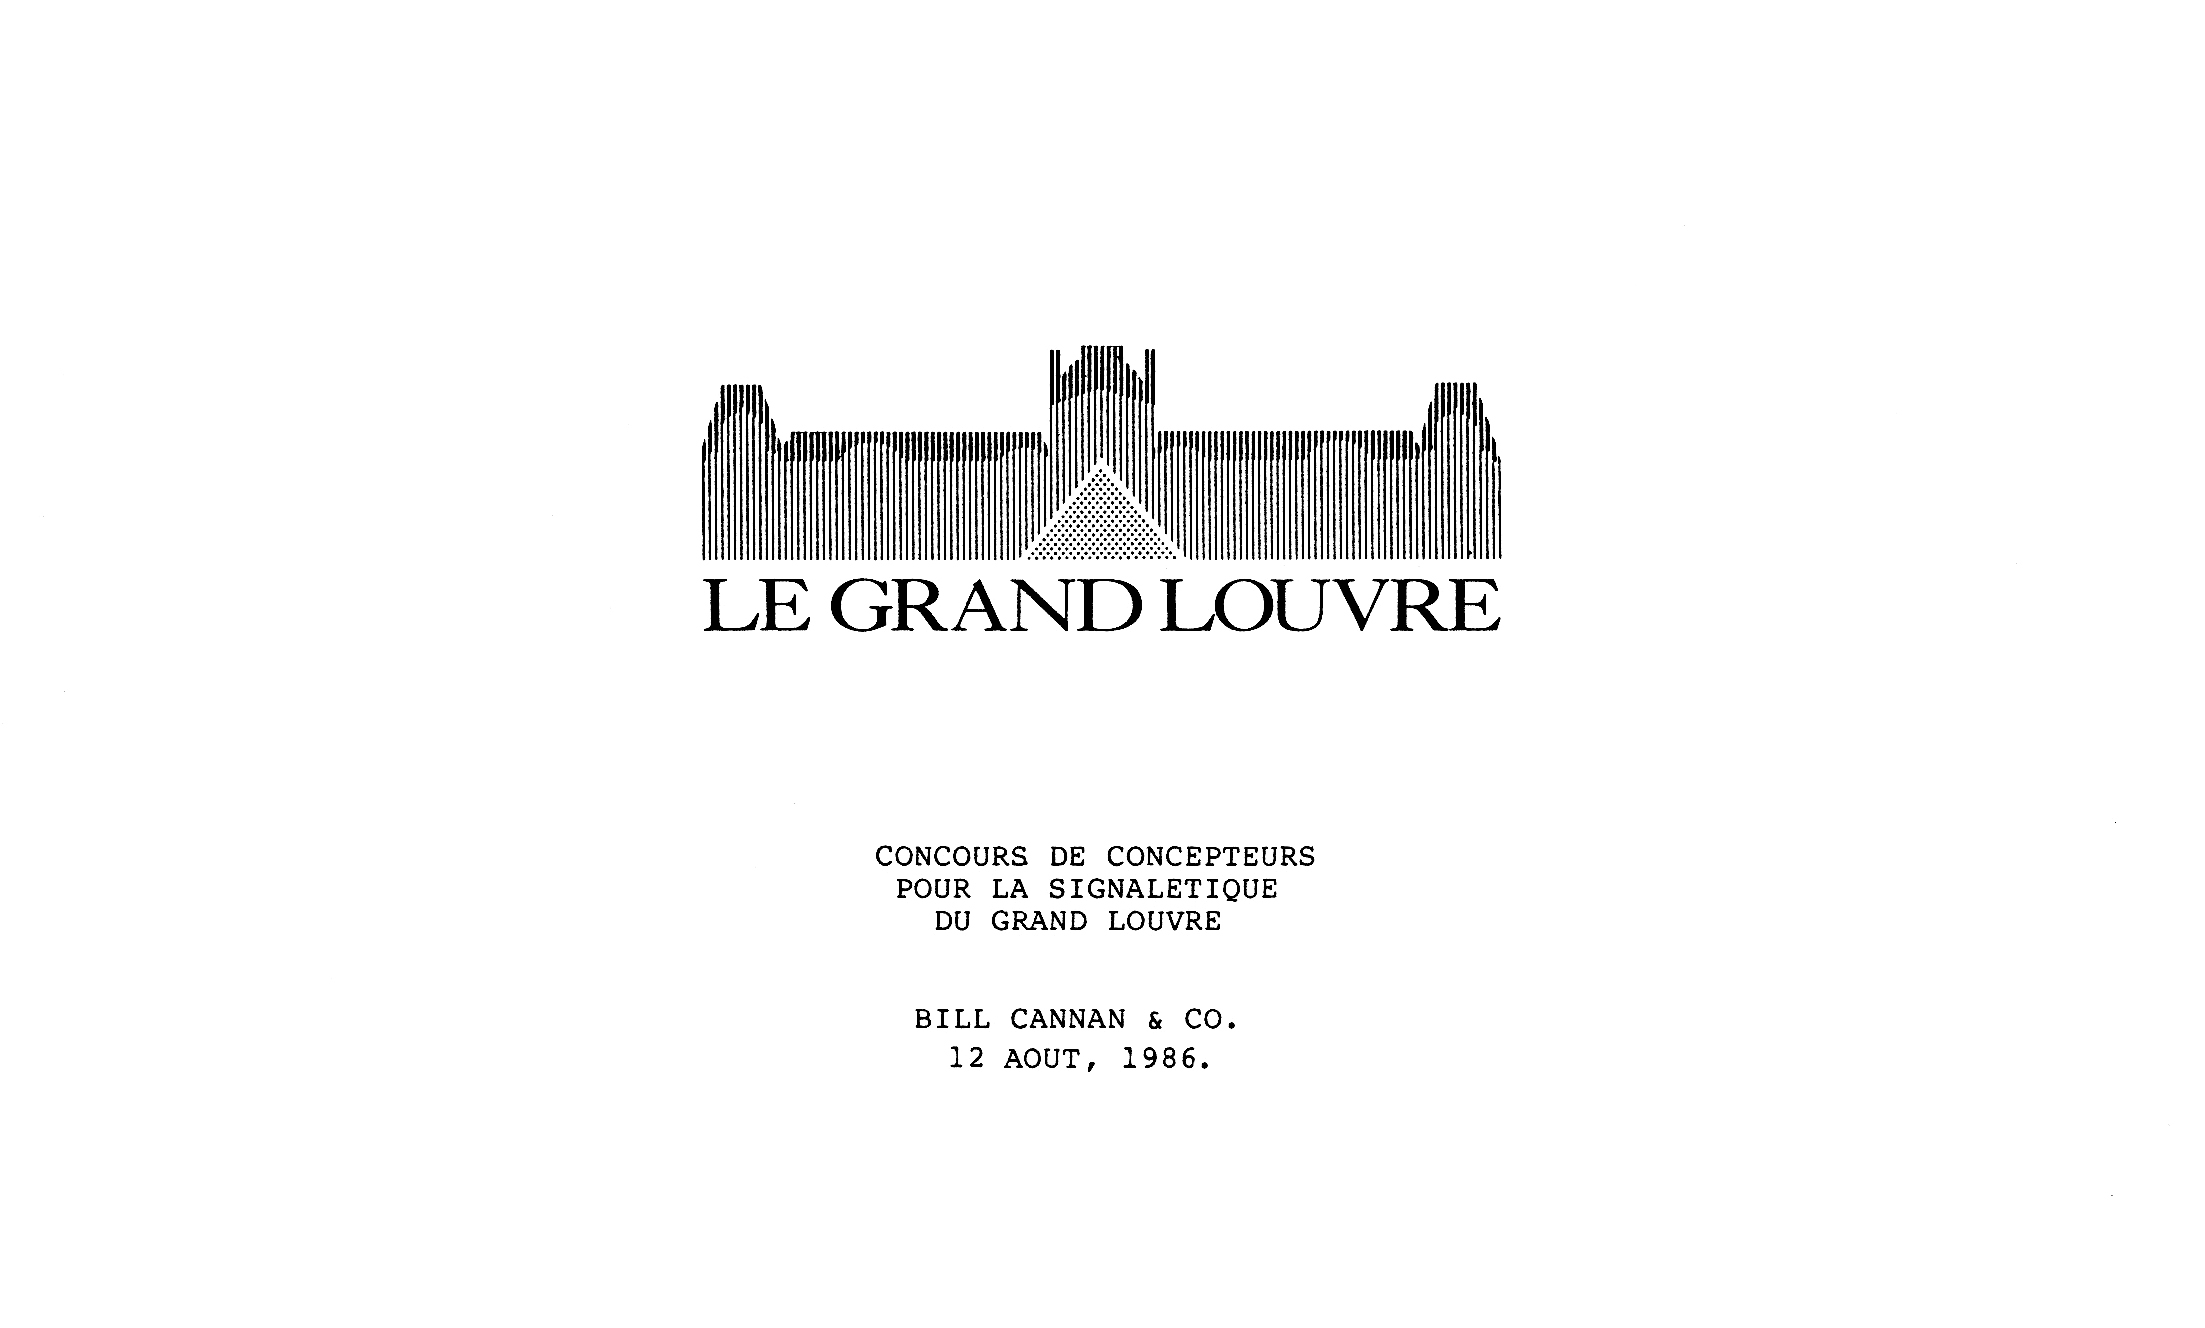 The cover of the Louvre Proposal Sketches Booklet, featuring the logo and dated August 12, 1986.